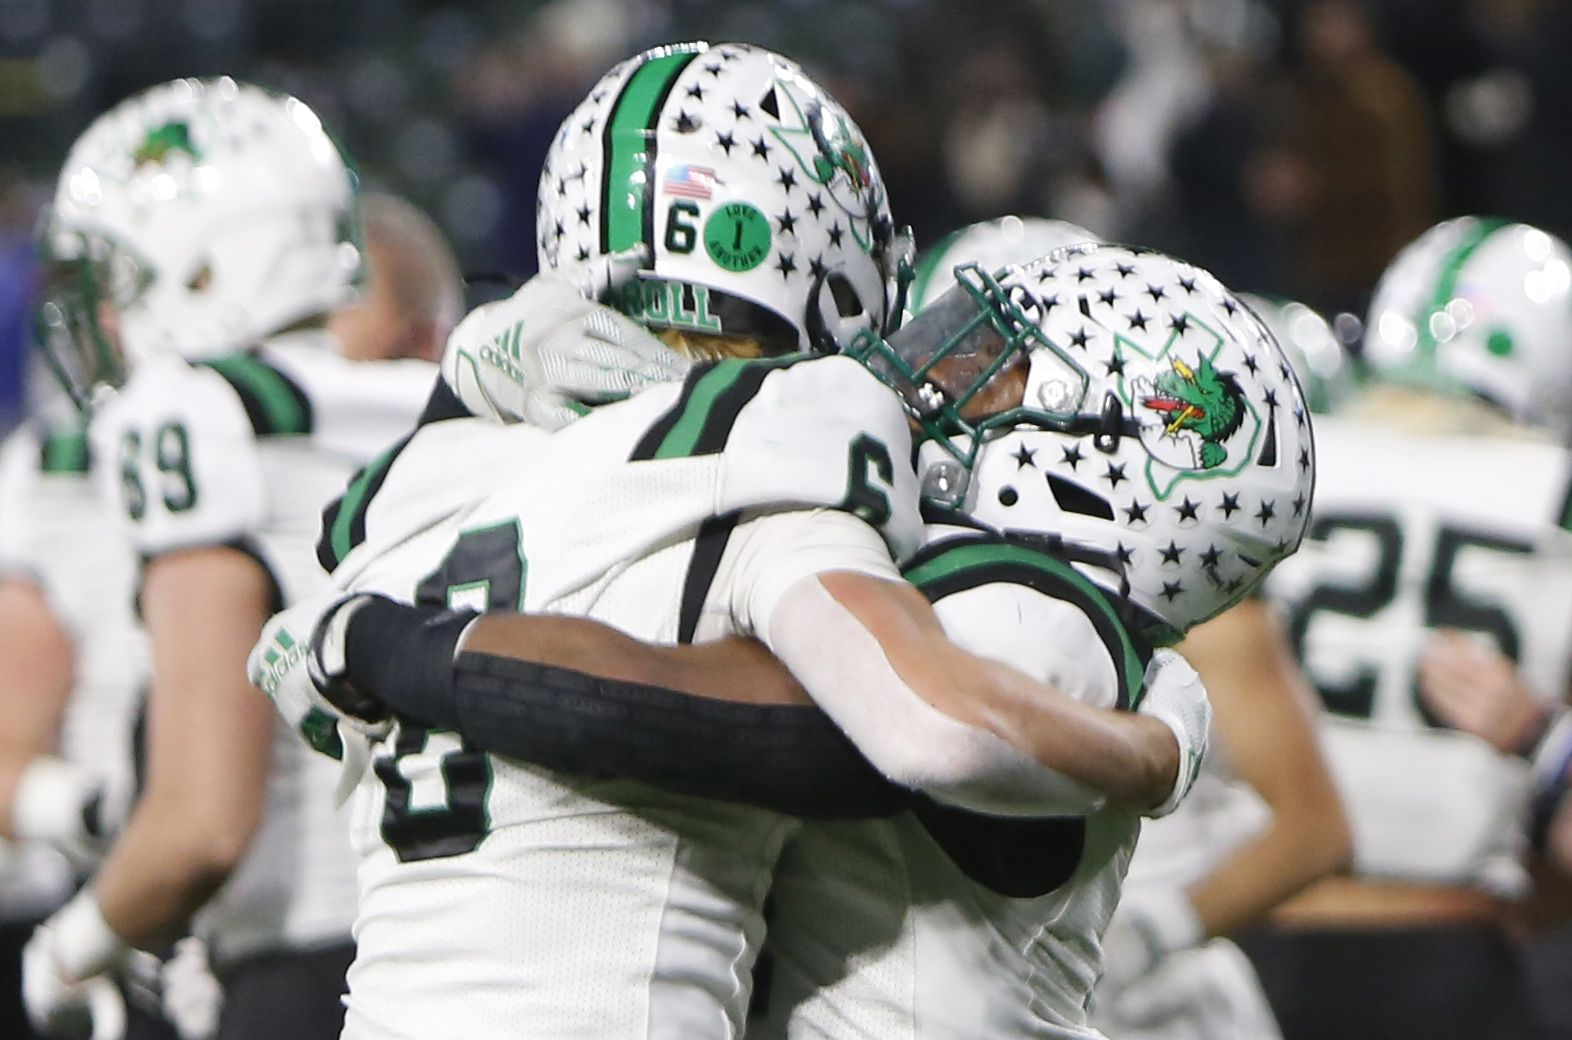 Southlake Dragons players Landon Samson (6), left, and Cinque Williams (4) celebrate the team's 30-26 victory over Arlington Martin to advance. The two teams played their Class 6A Division l Region l semifinal football playoff game held at Globe Life Park in Arlington on December 24, 2020. (Steve Hamm/ Special Contributor)